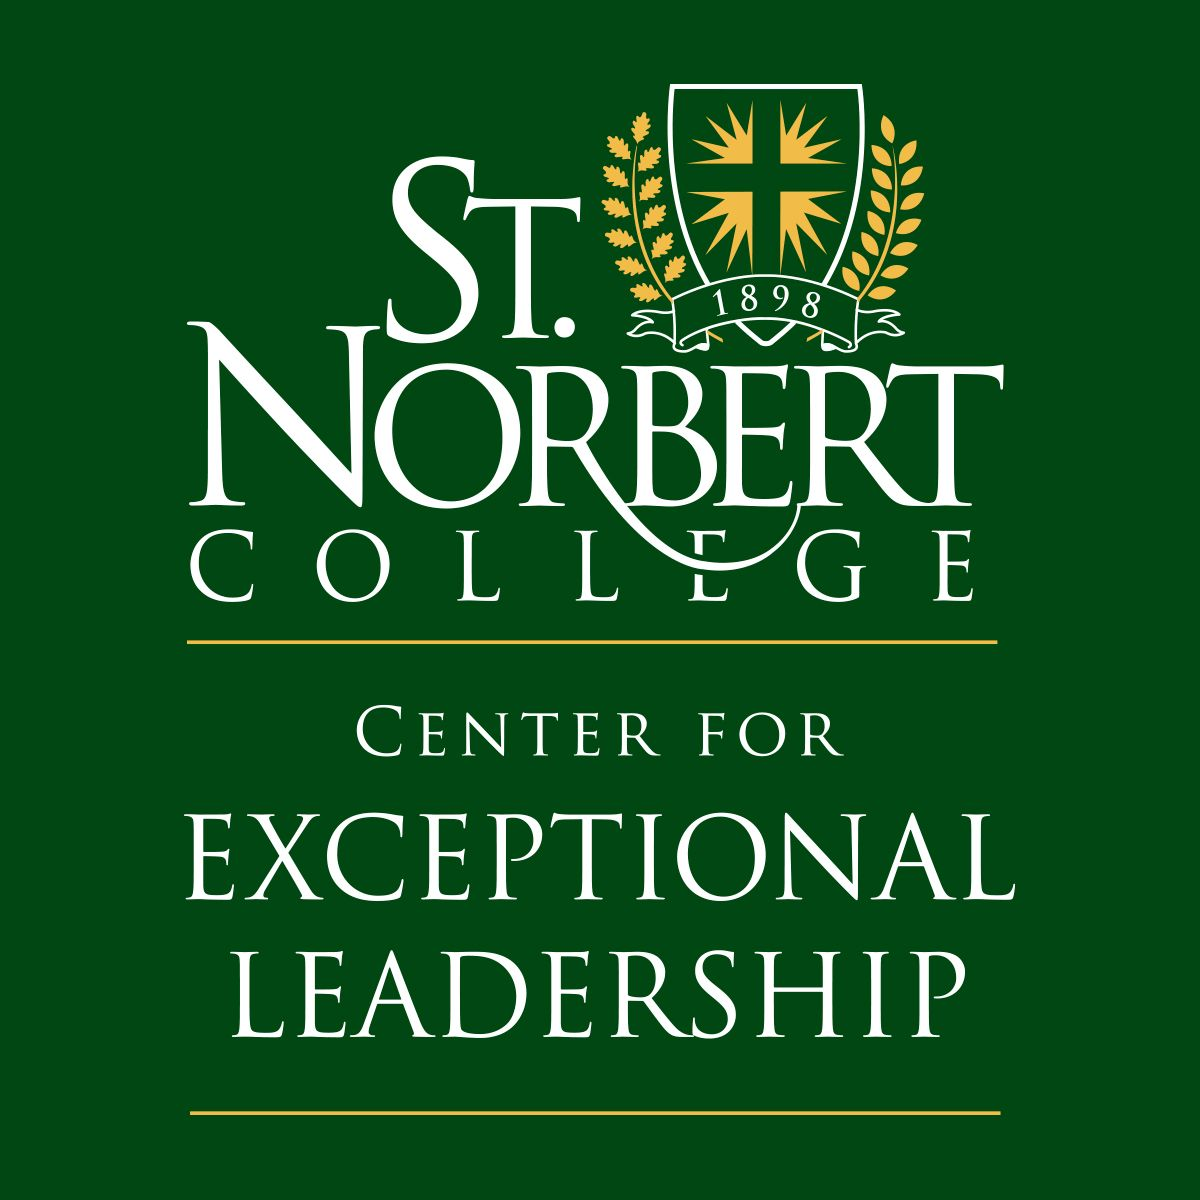 The Center for Exceptional Leadership Inspirational Leadership Series - Seminars